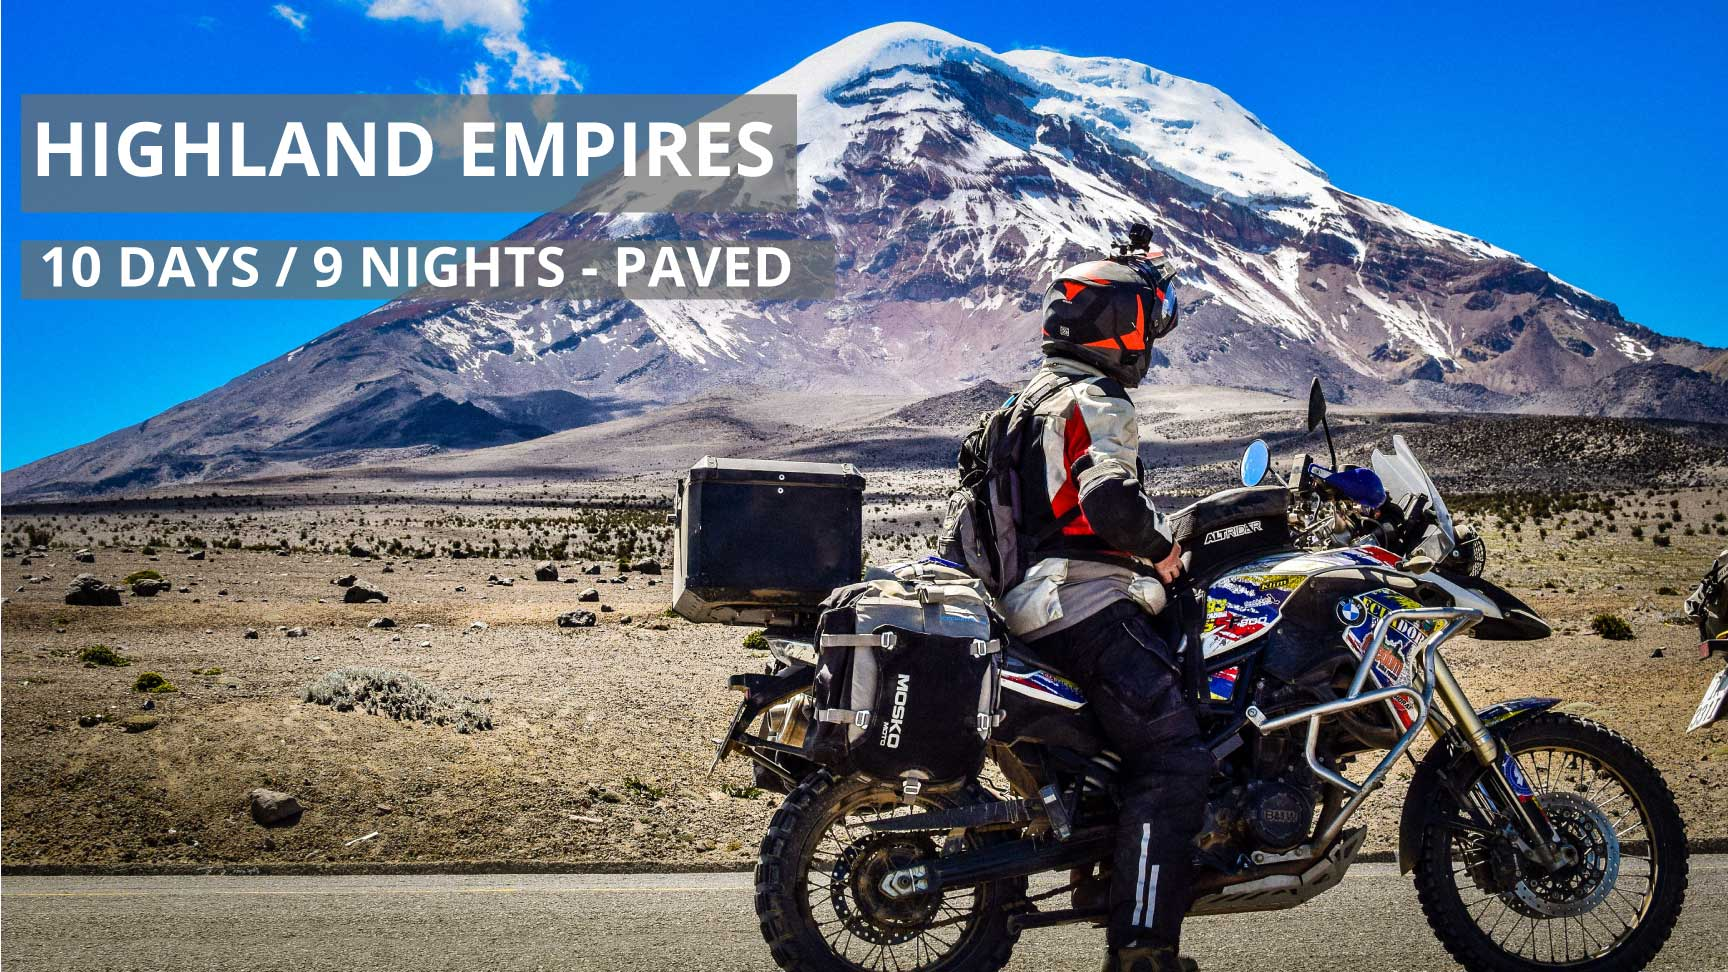 Highland Empires Self-Guided Motorcycle Adventure Tour